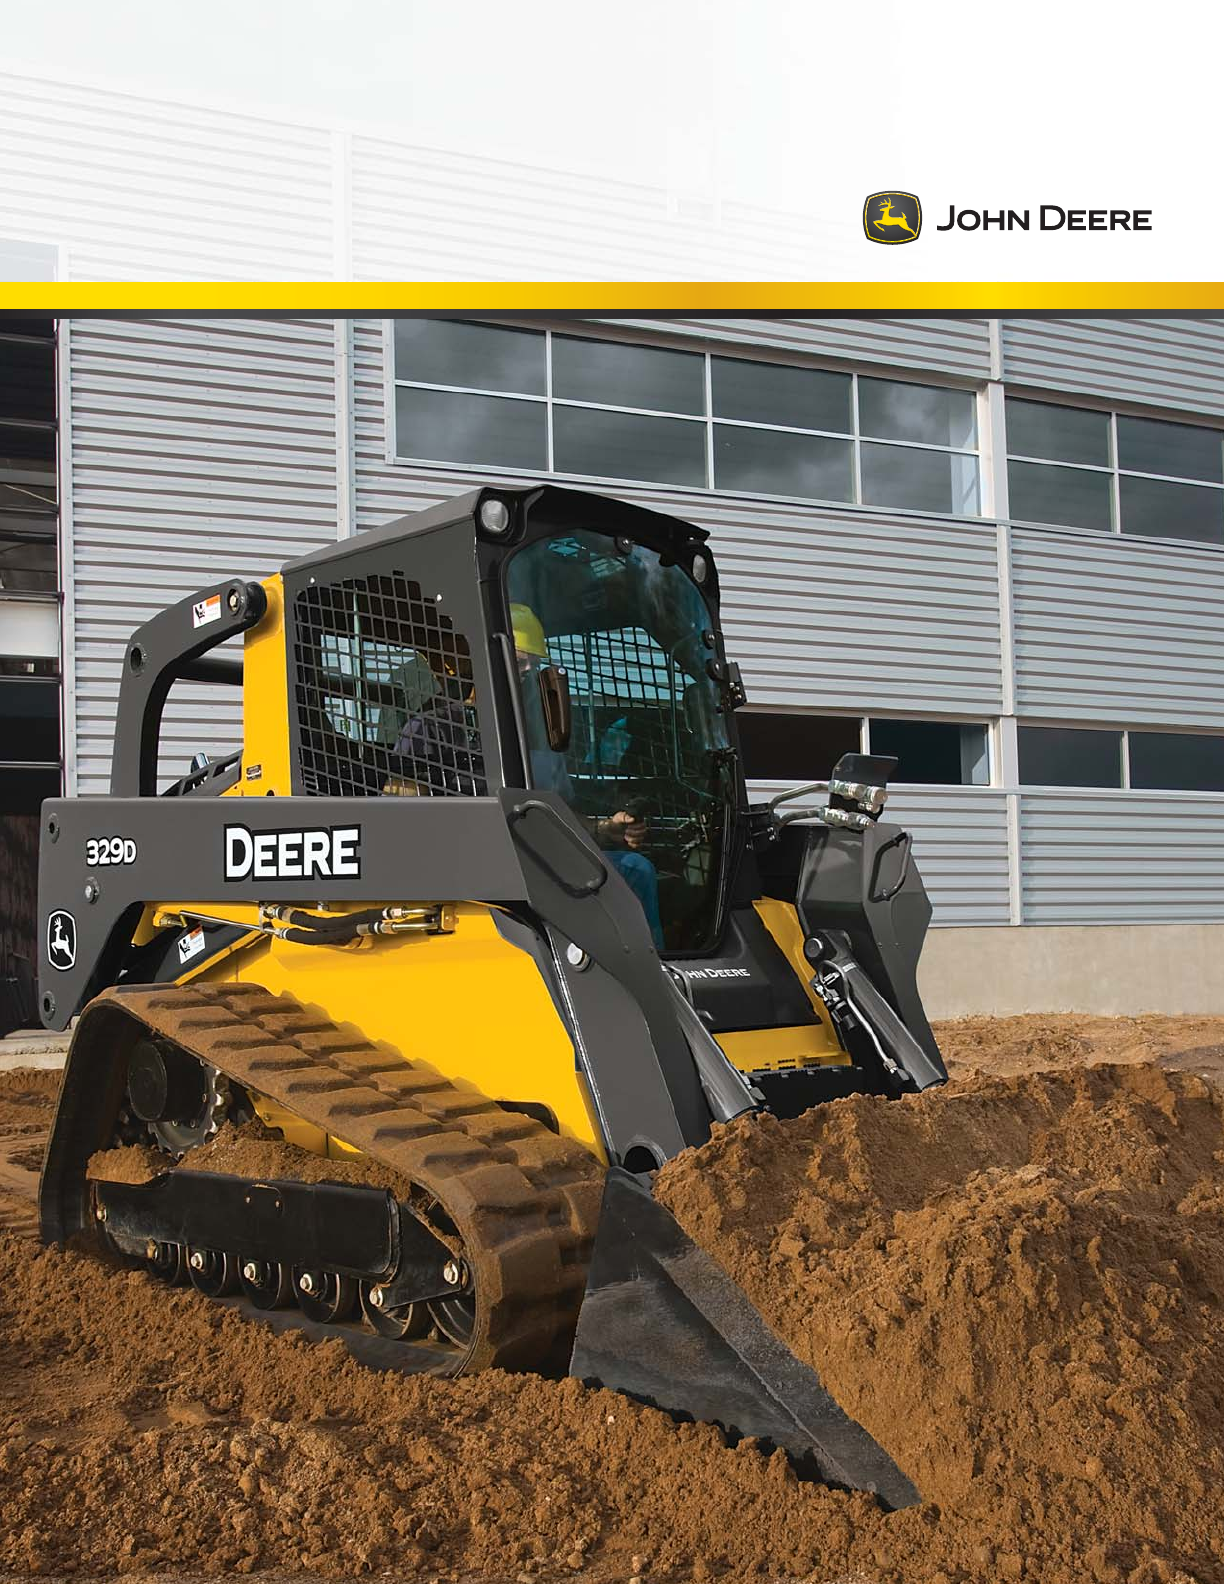 John Deere Compact Loader 323D User Guide | ManualsOnline.com